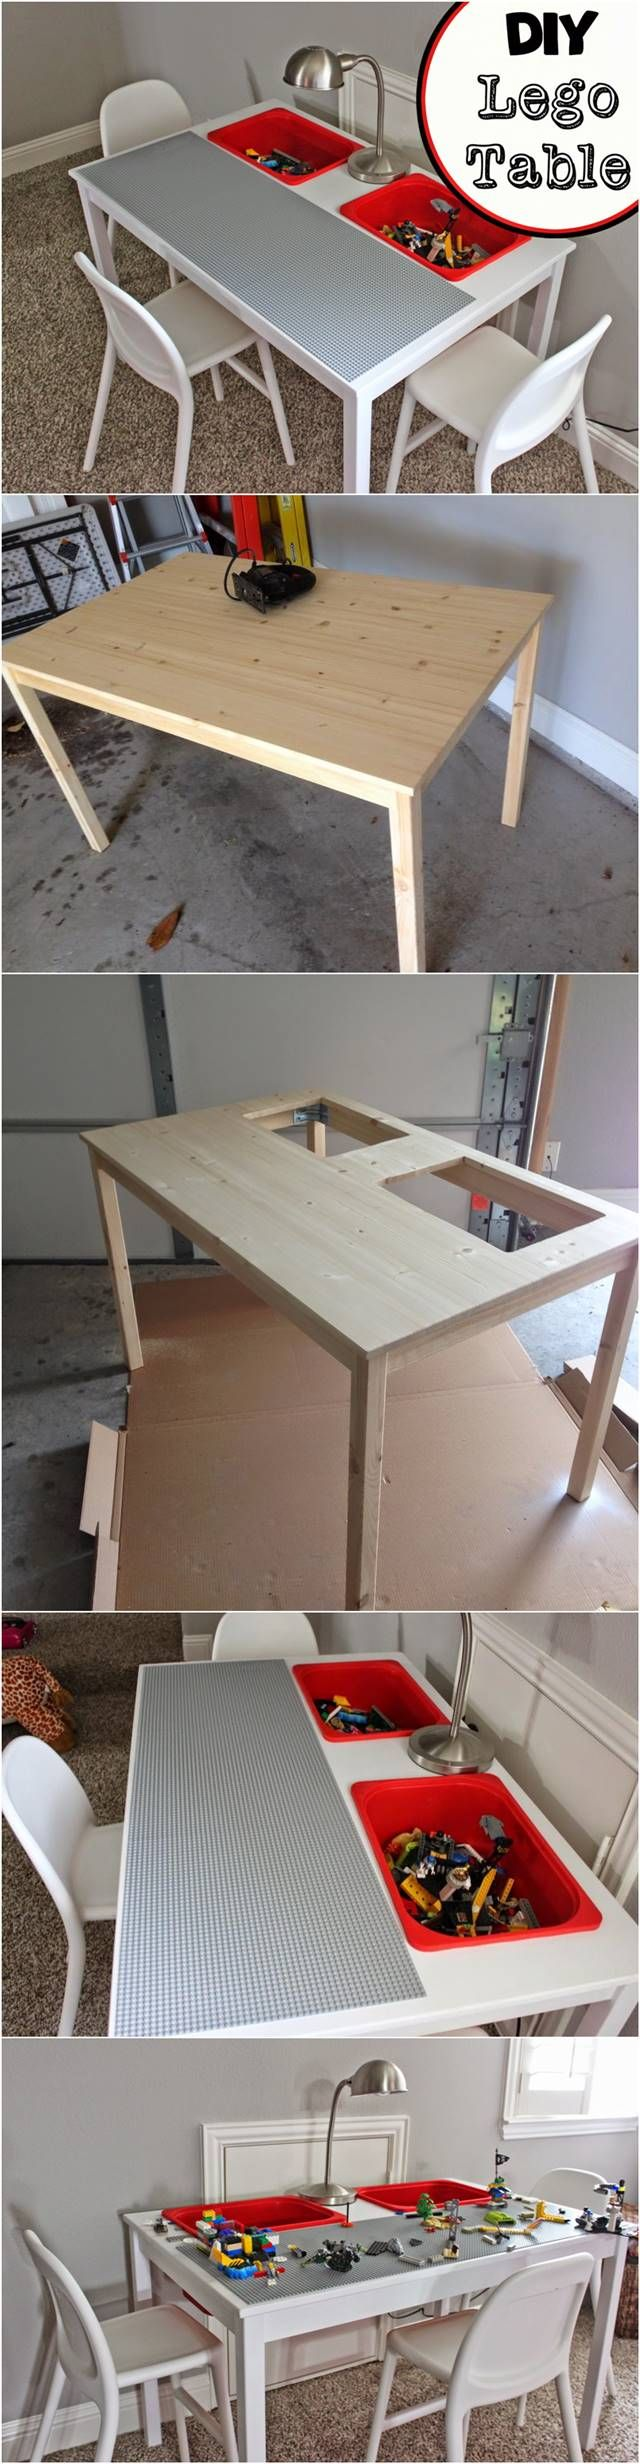 Transform An IKEA Table Into A LEGO Table! Kids will love it! #furniture #IKEA #hack